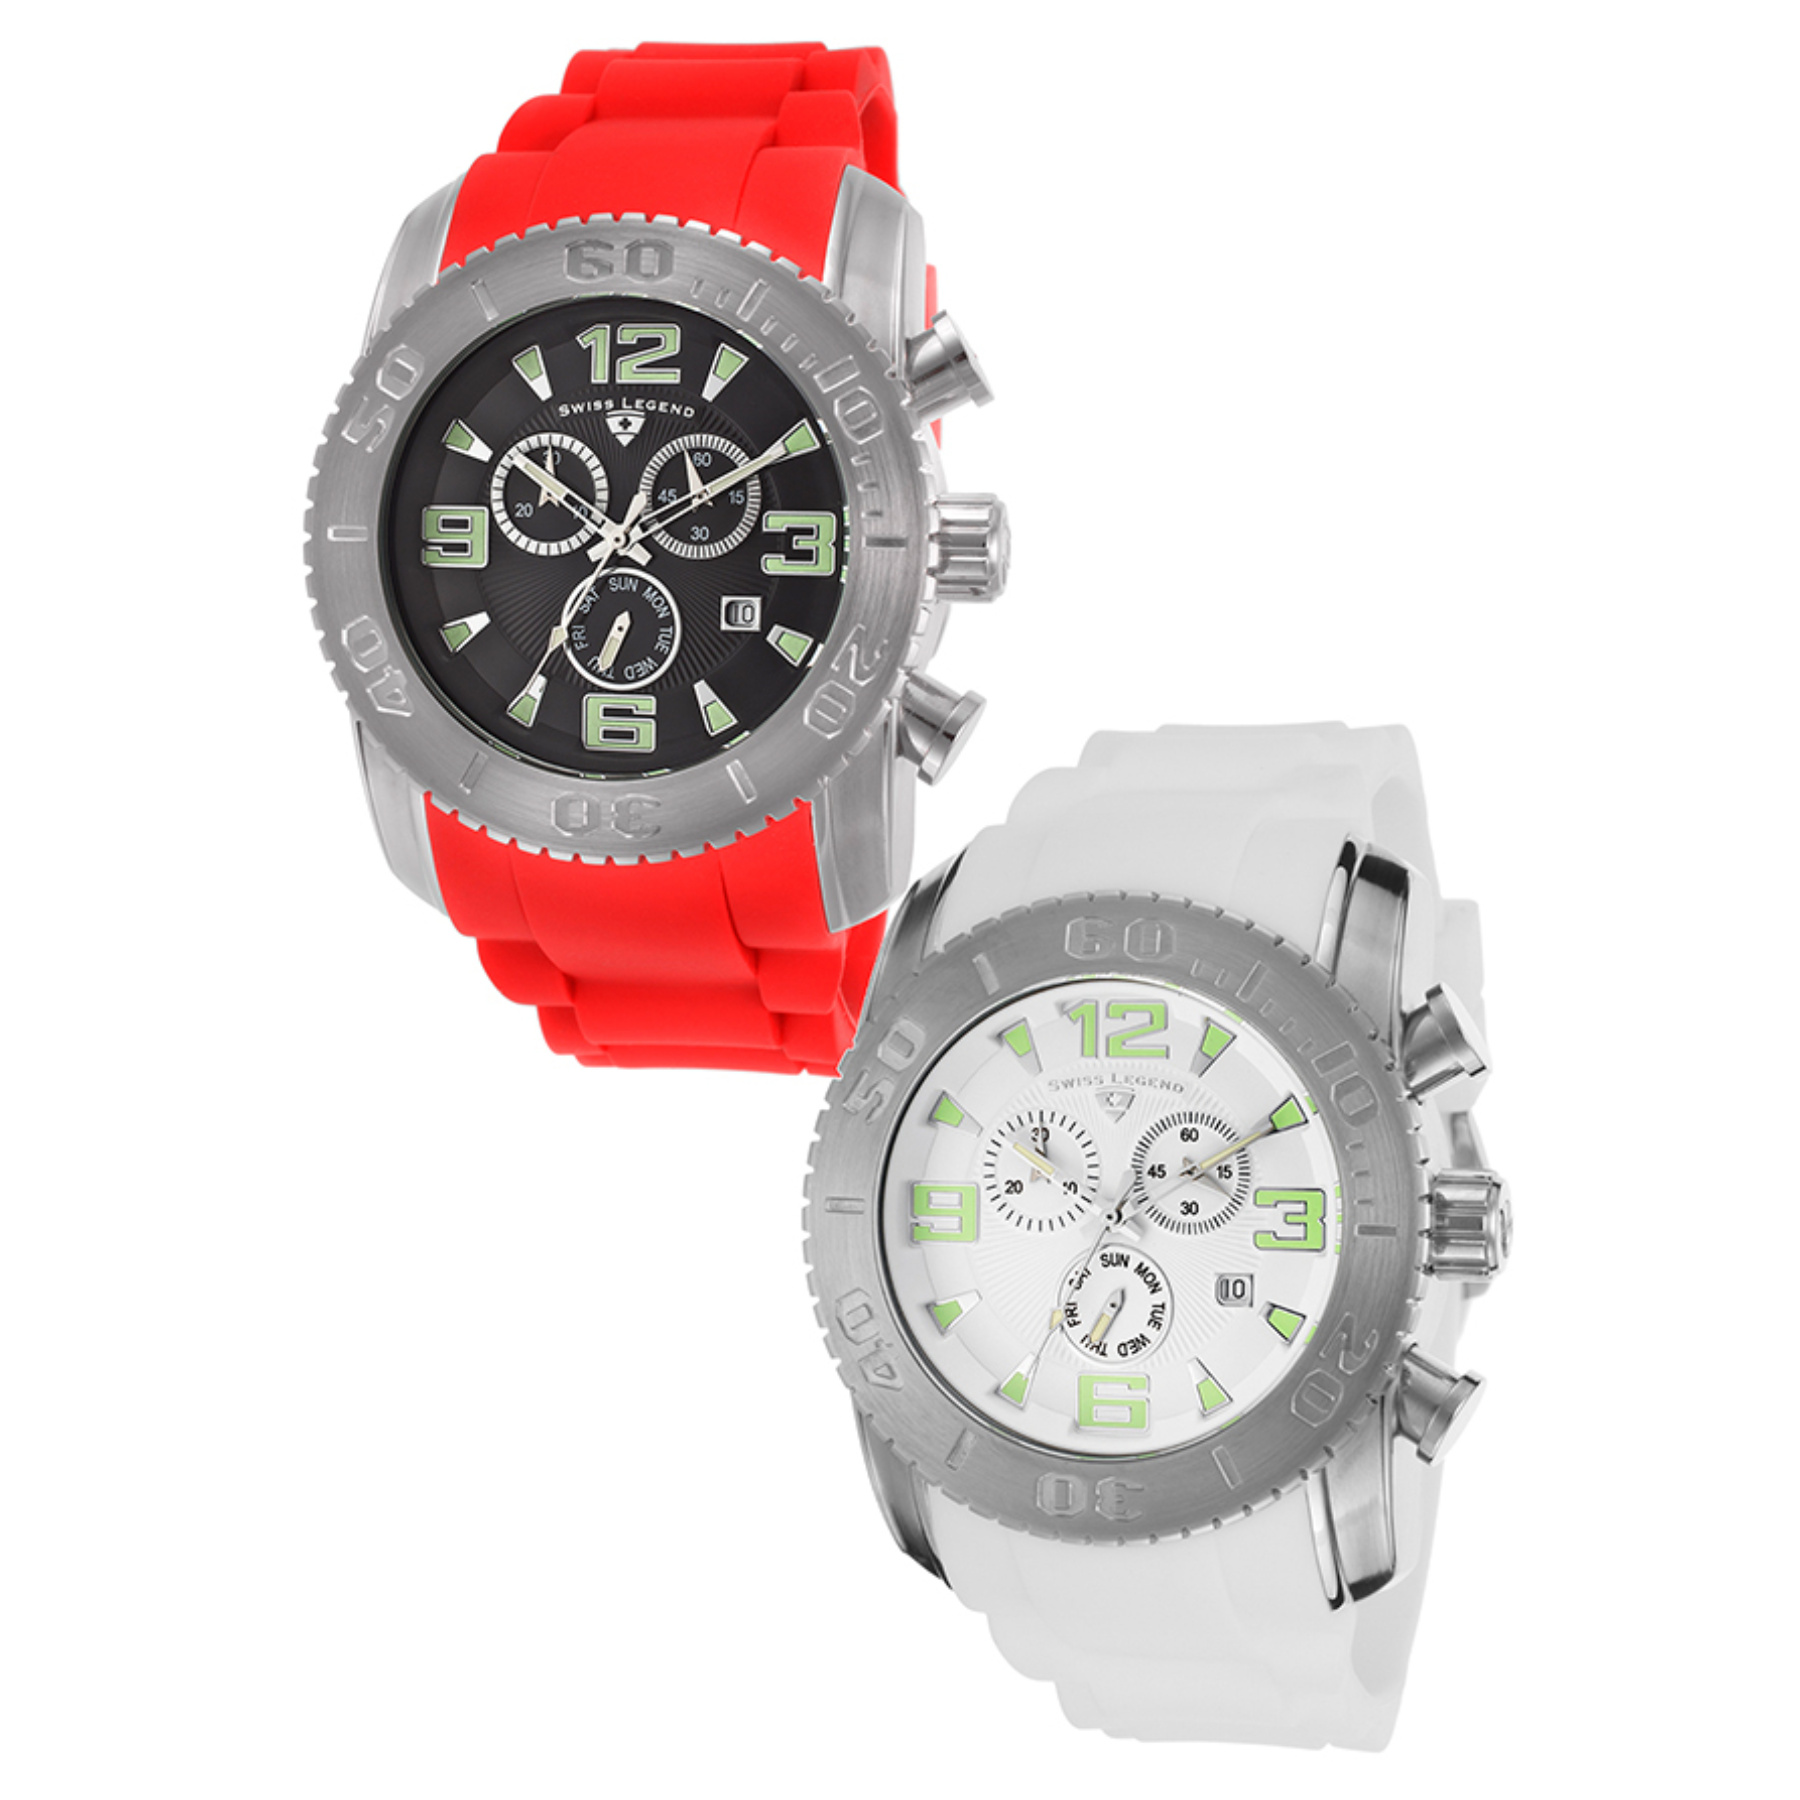 Commander Chronograph Red Silicone Black Dial Set 10067-01-RDS-SL-10067-02